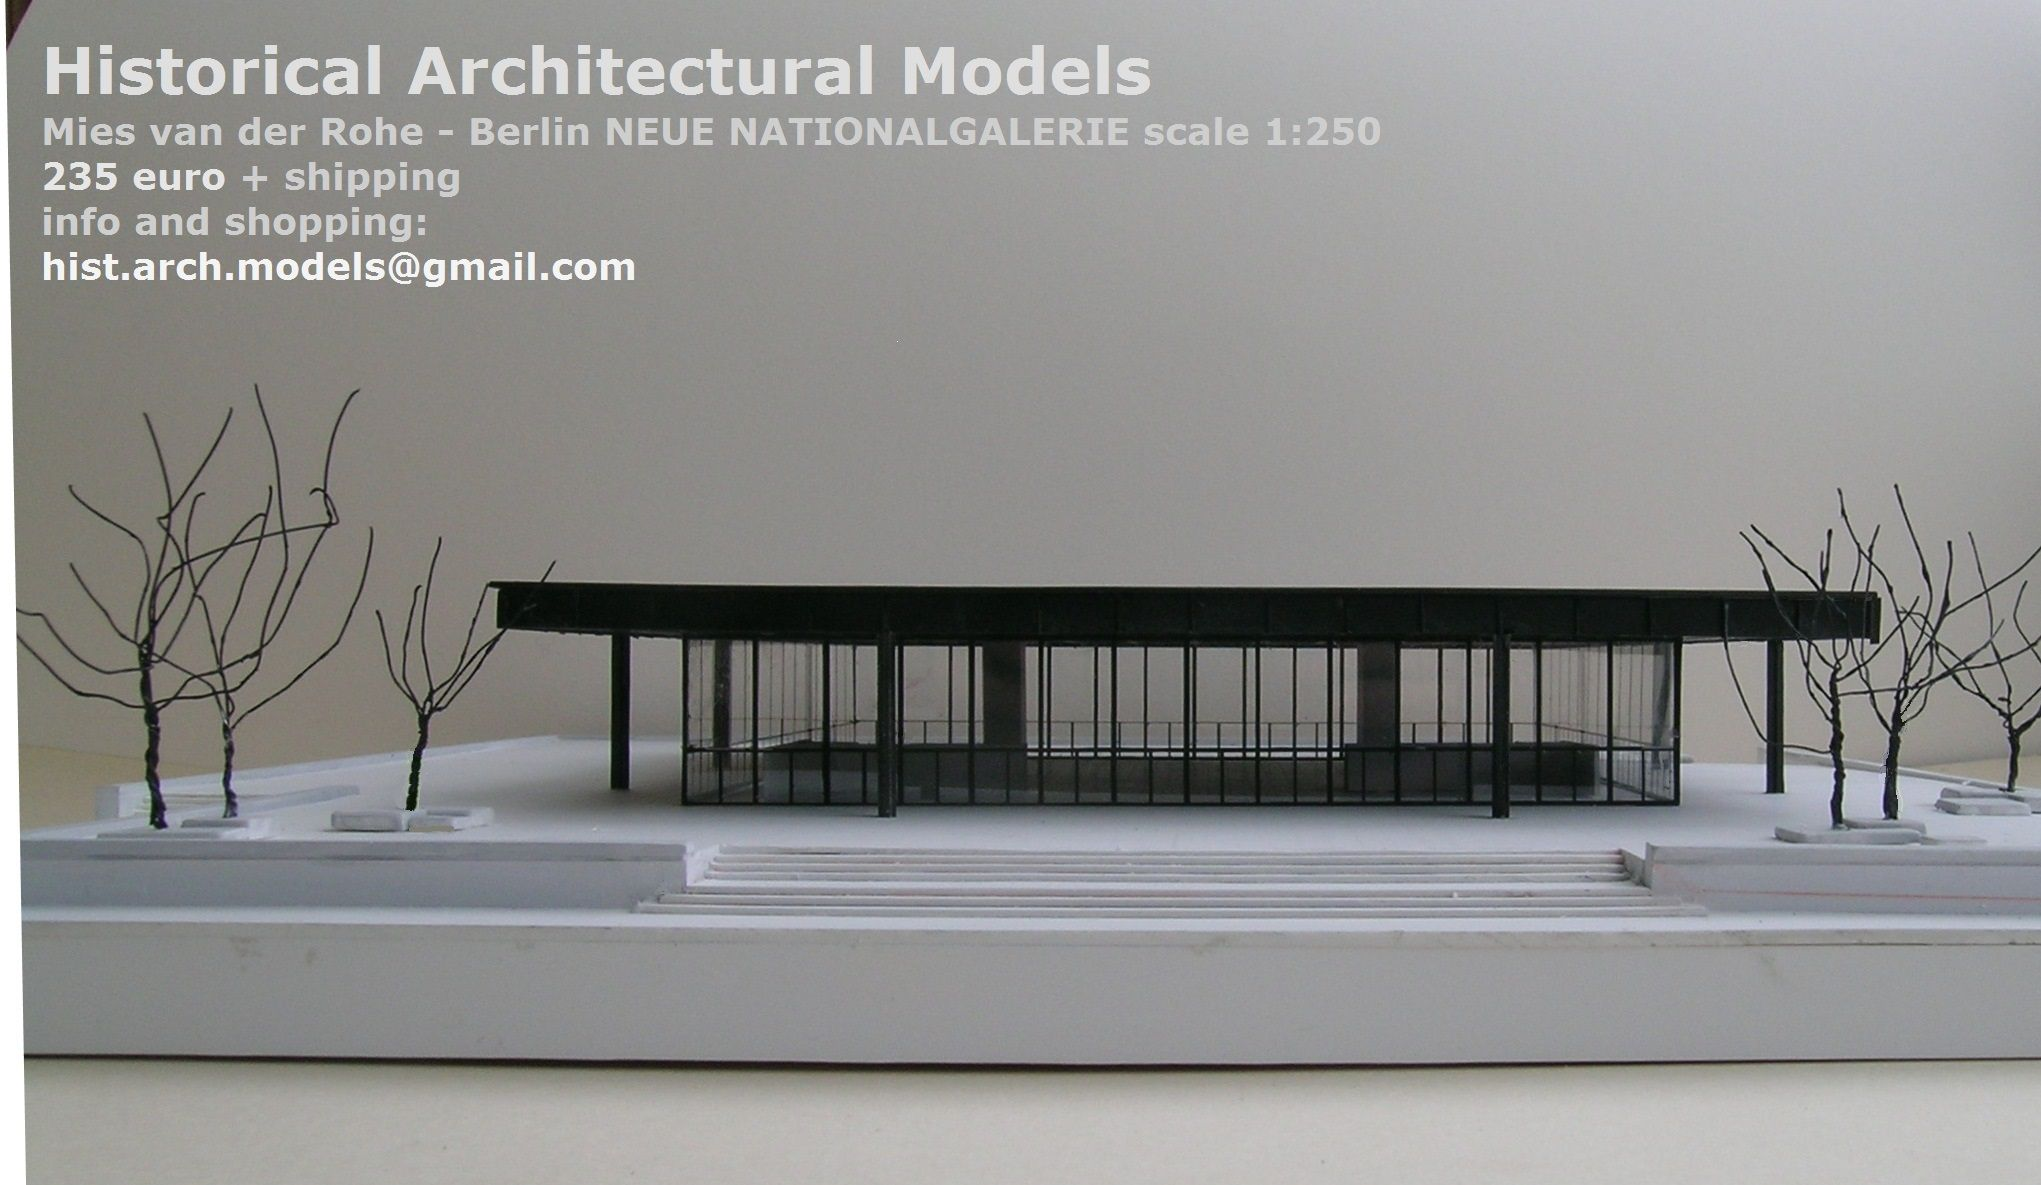 Mies Van Der Rohe New National Gallery, Berlin ( Neue Nationalgalerie)  Scale Model 1:250